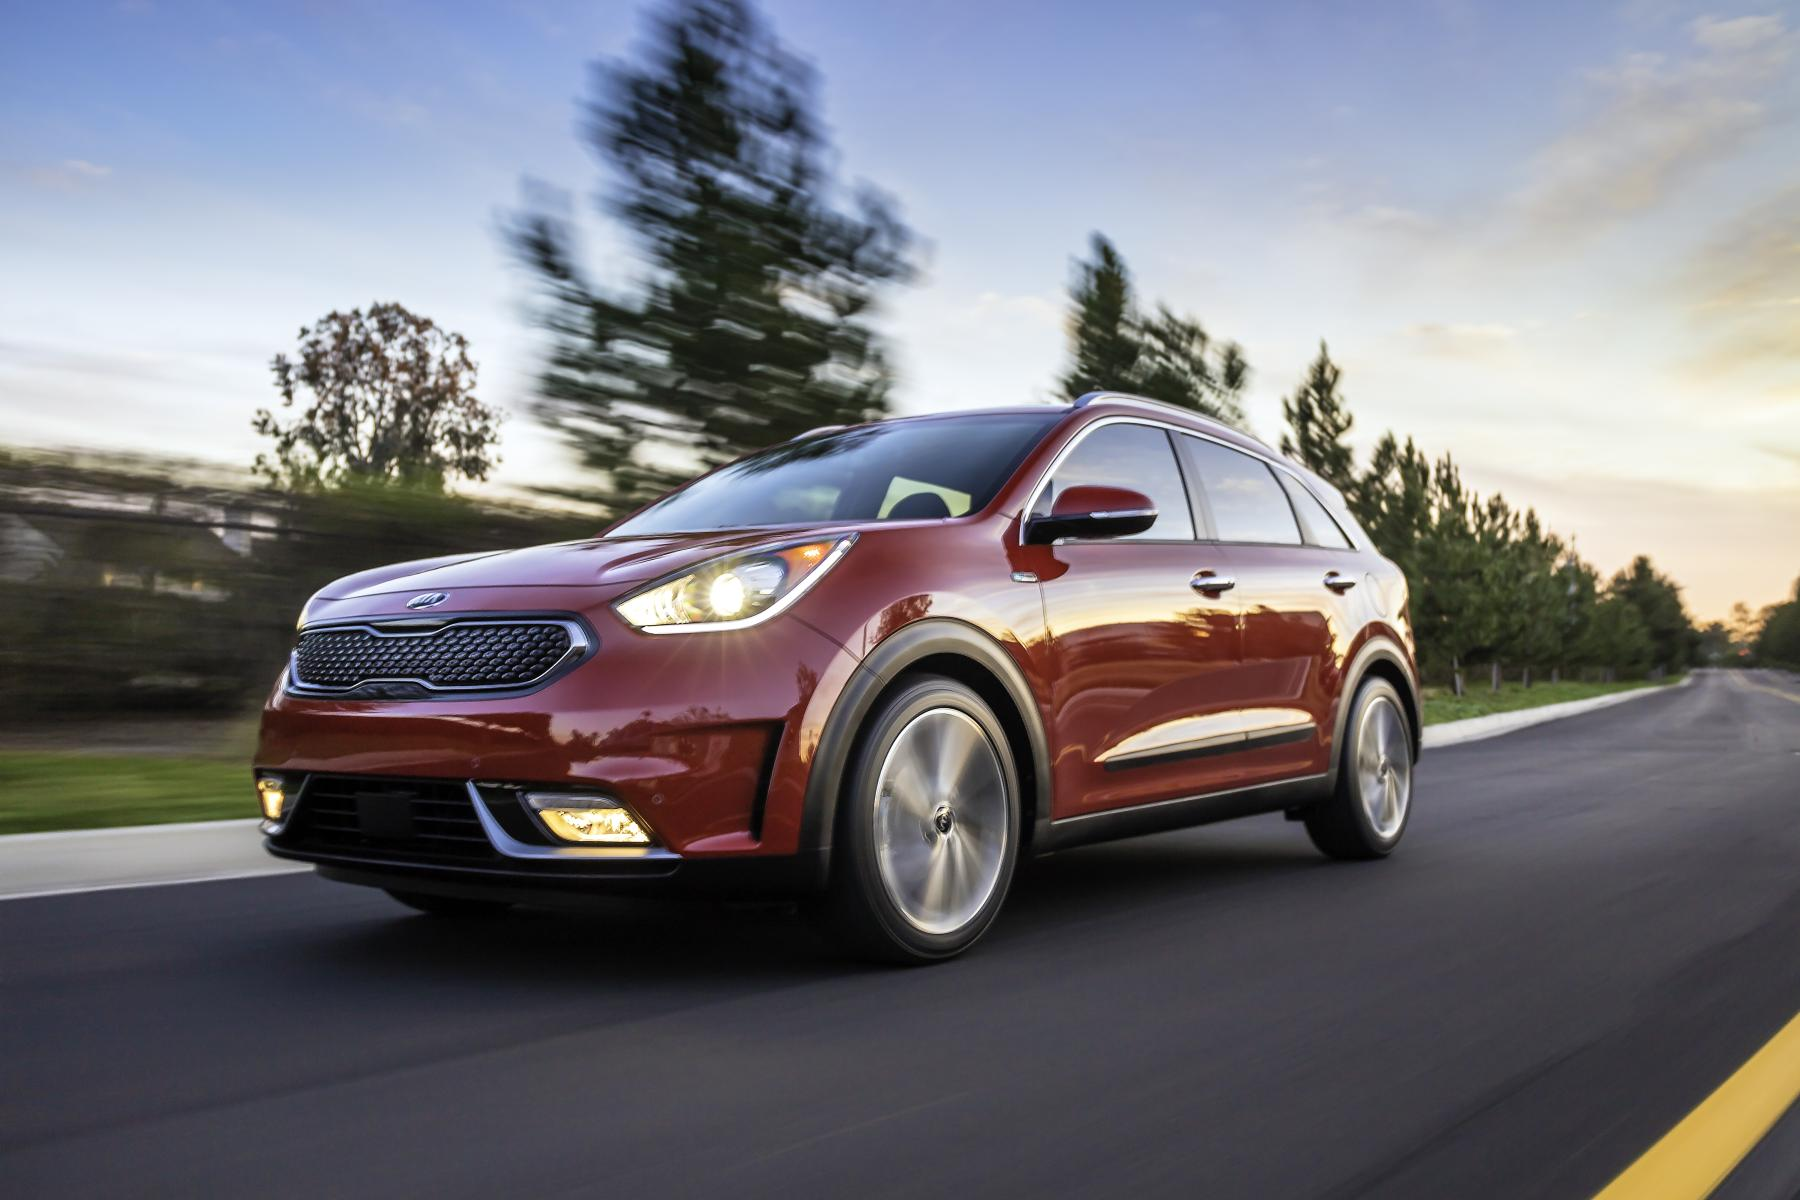 2017 kia niro hybrid unveiled with 1 6l engine and 50 mpg combined estimate autoevolution. Black Bedroom Furniture Sets. Home Design Ideas